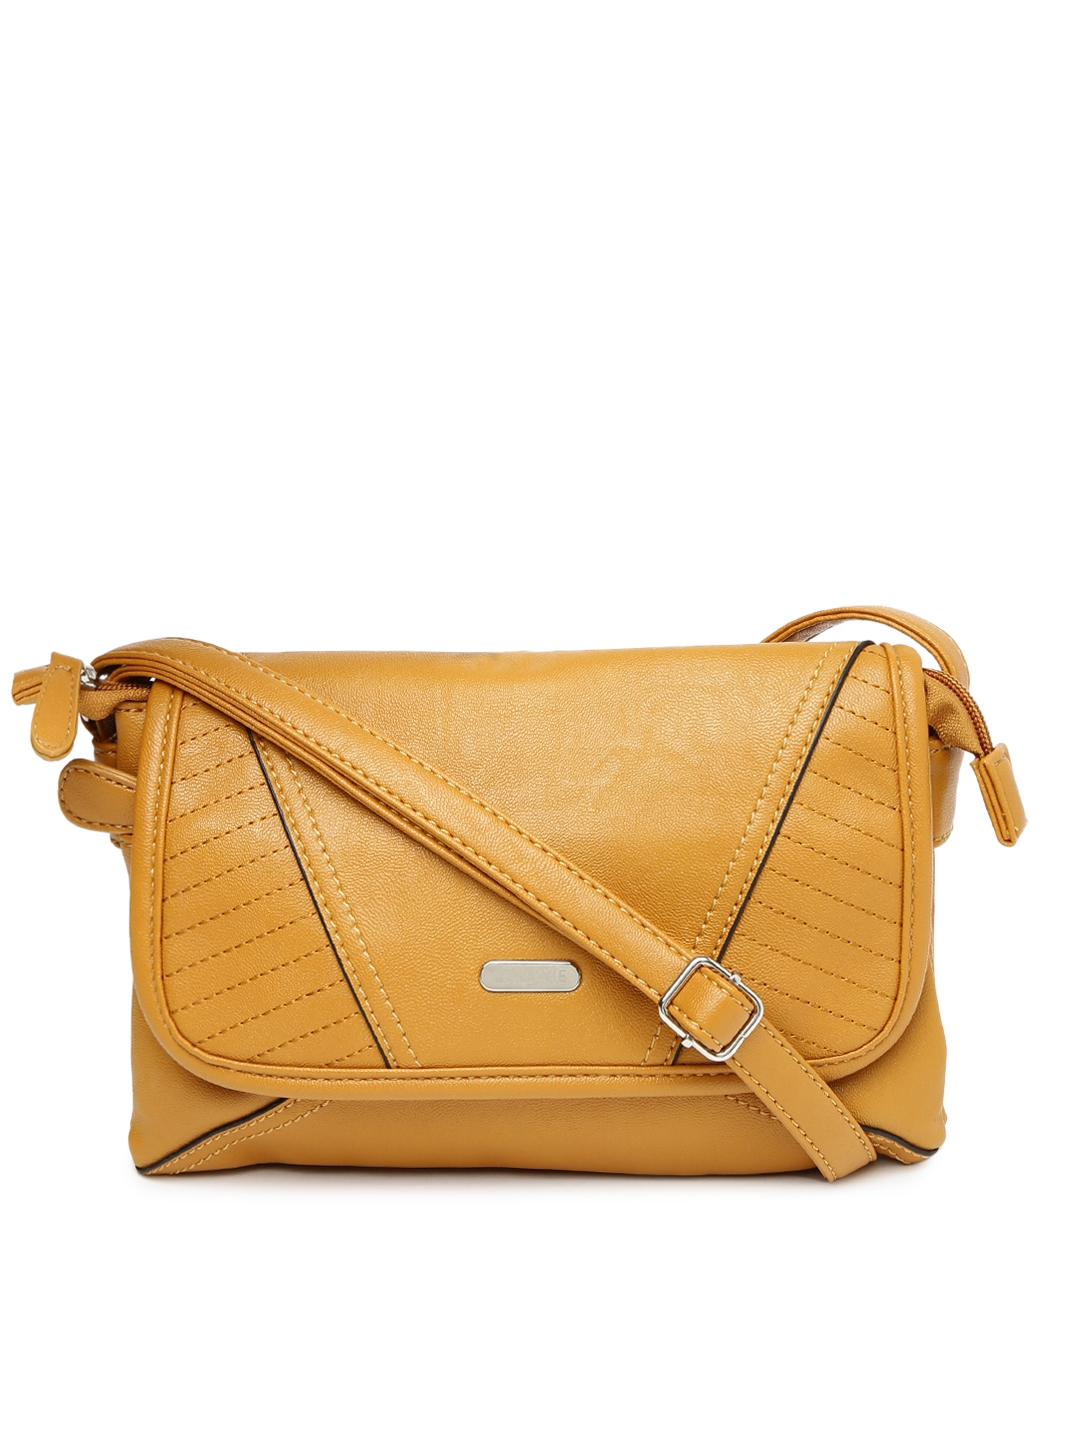 69b5383a371 Buy Lavie Yellow Sling Bag With Stitch Detail - Handbags for Women ...